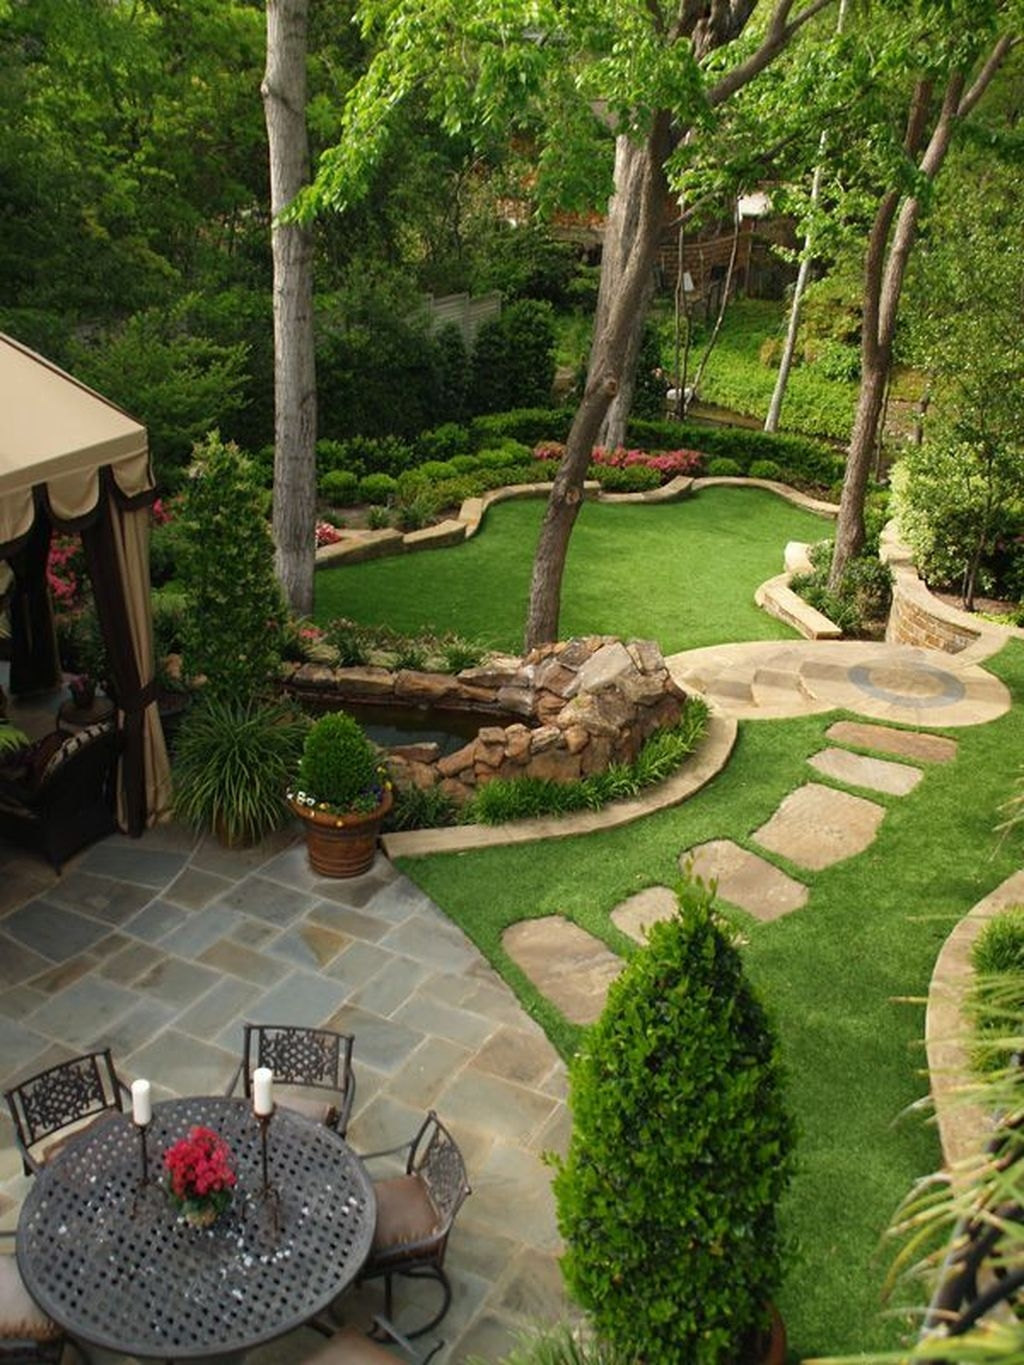 Stylish Backyard Landscaping Ideas For Your Dream House40